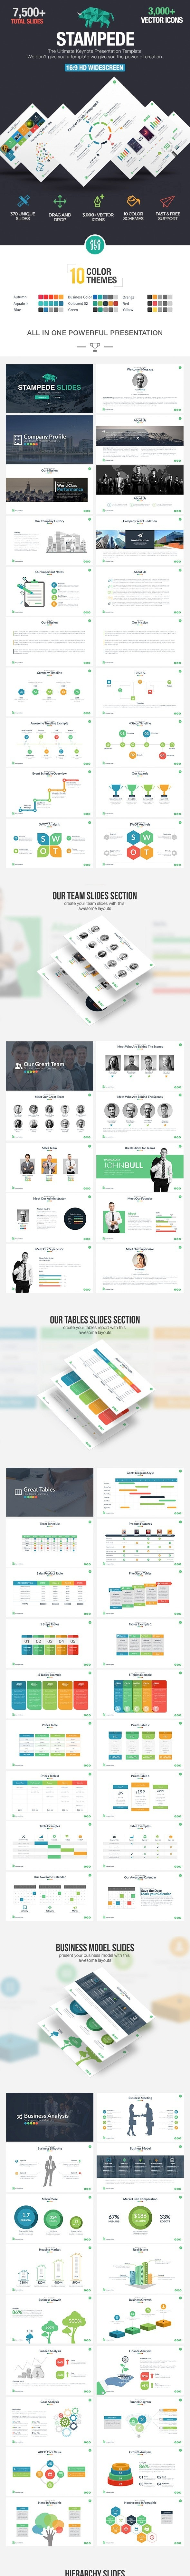 Stampede - Multipurpose Keynote Template - Business Keynote Templates